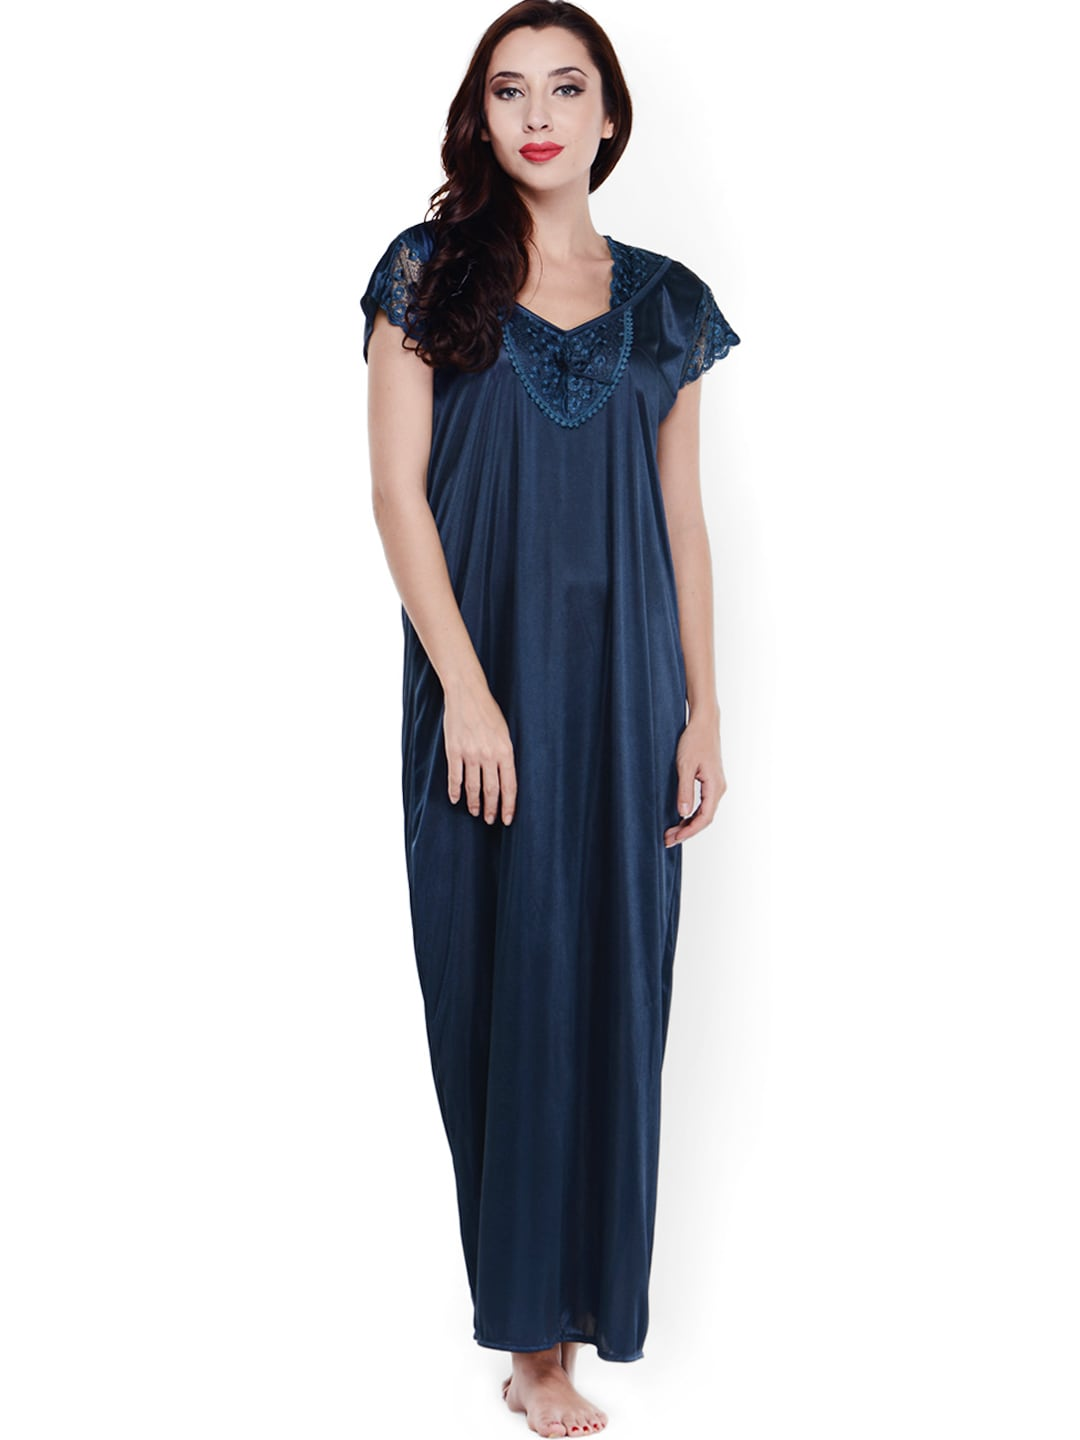 Klamotten Navy Satin Maxi Nightdress XX89